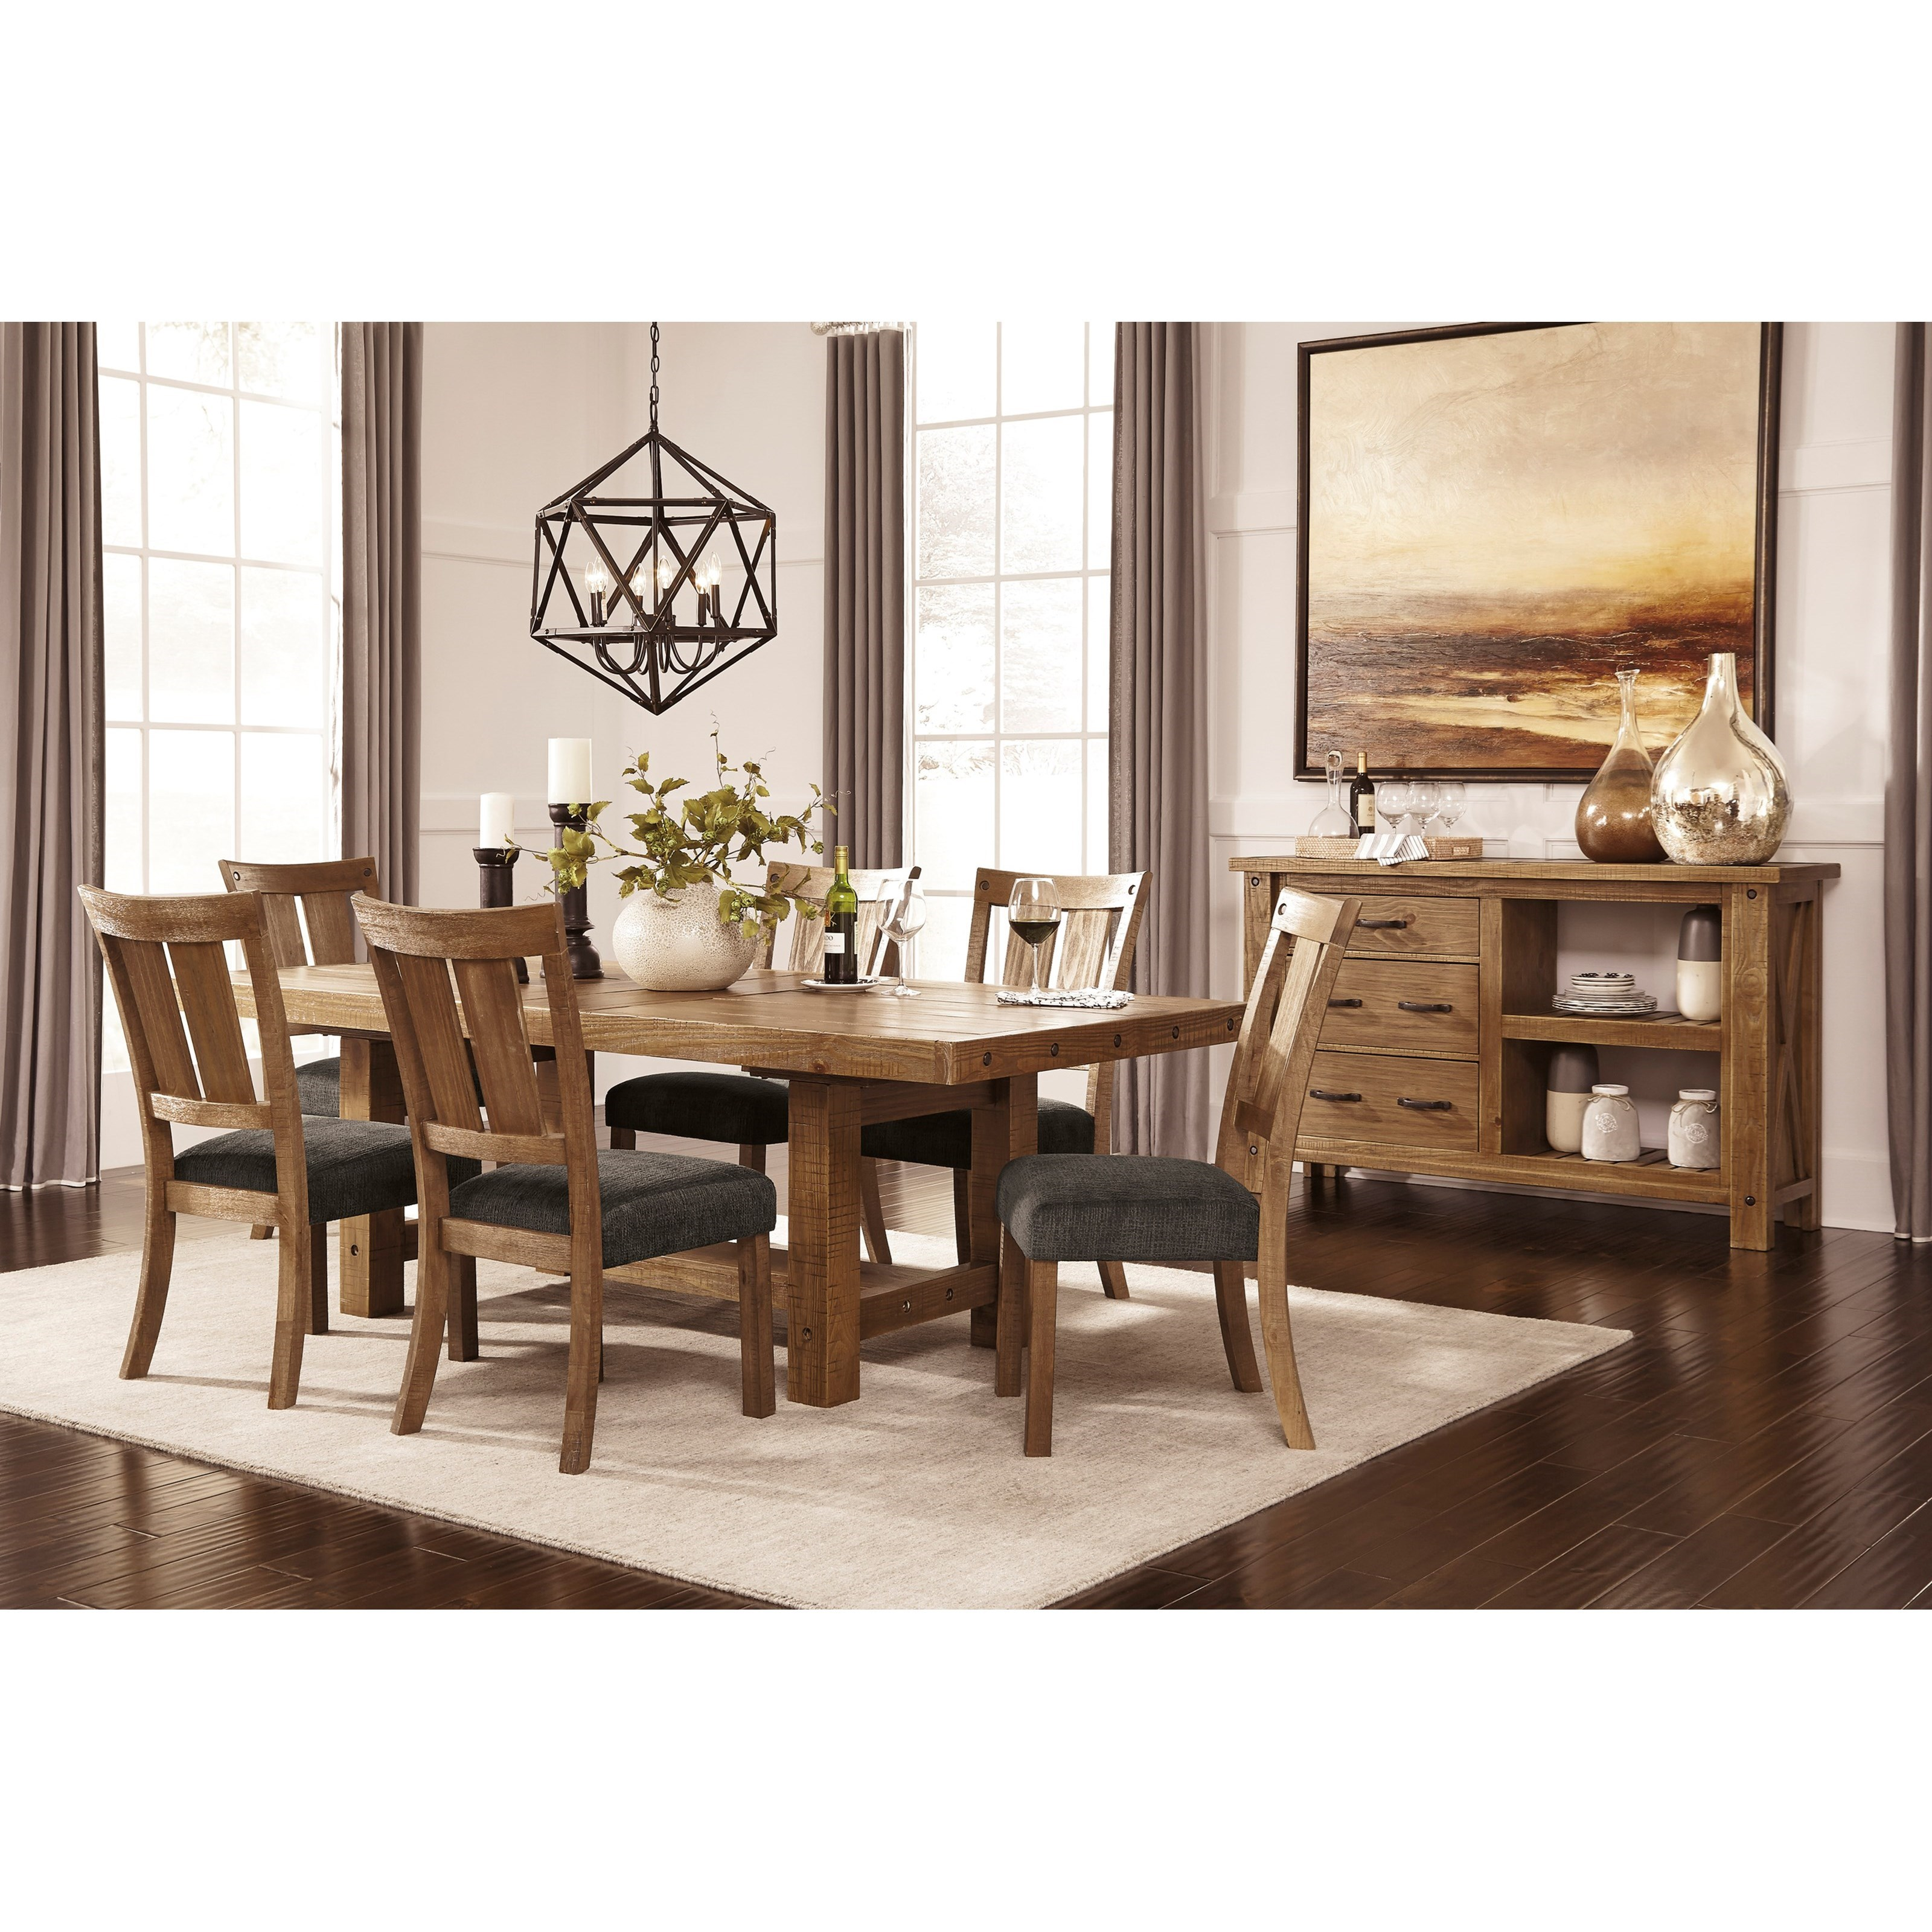 Signature design by ashley tamilo casual dining room group for Casual dining room